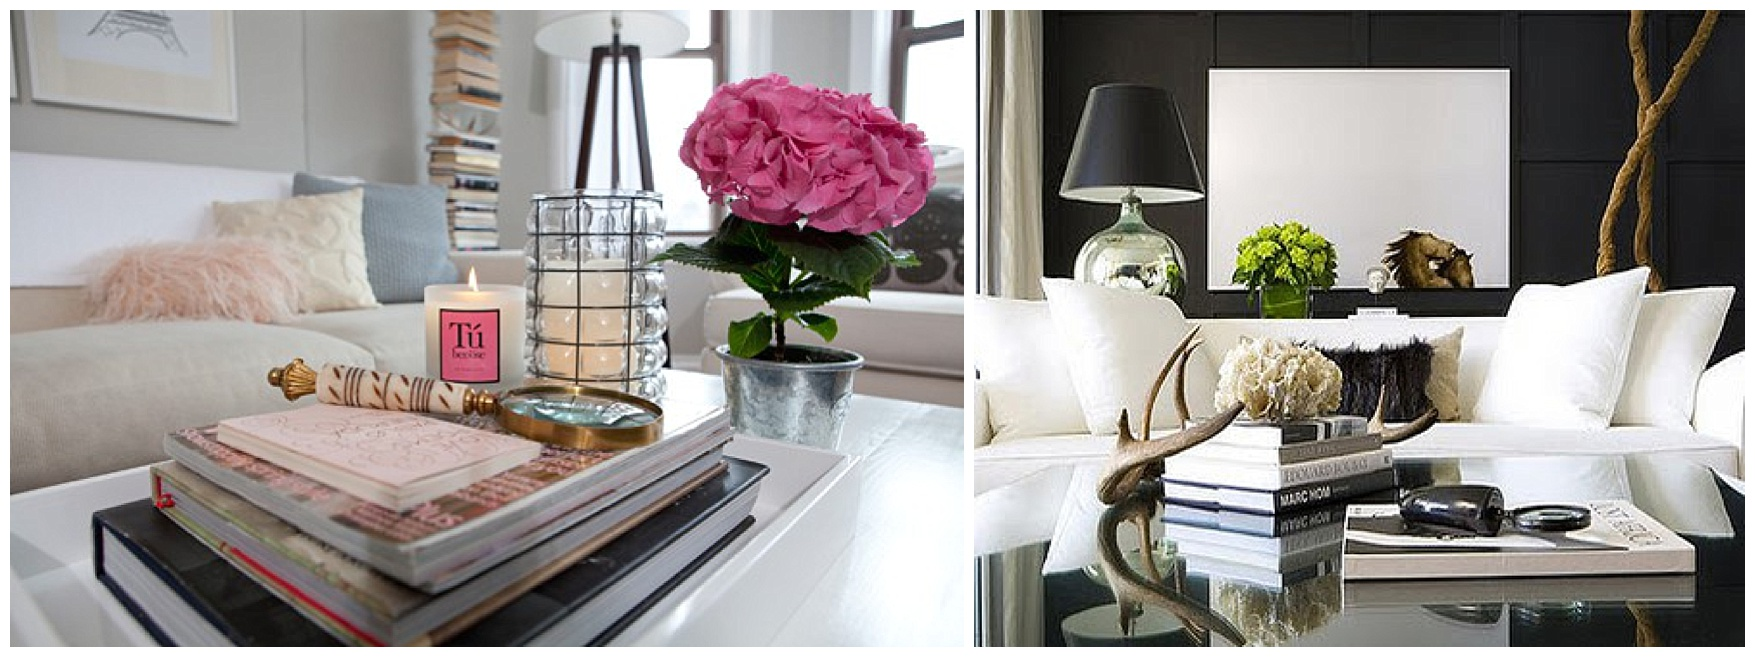 Staging your coffee table books